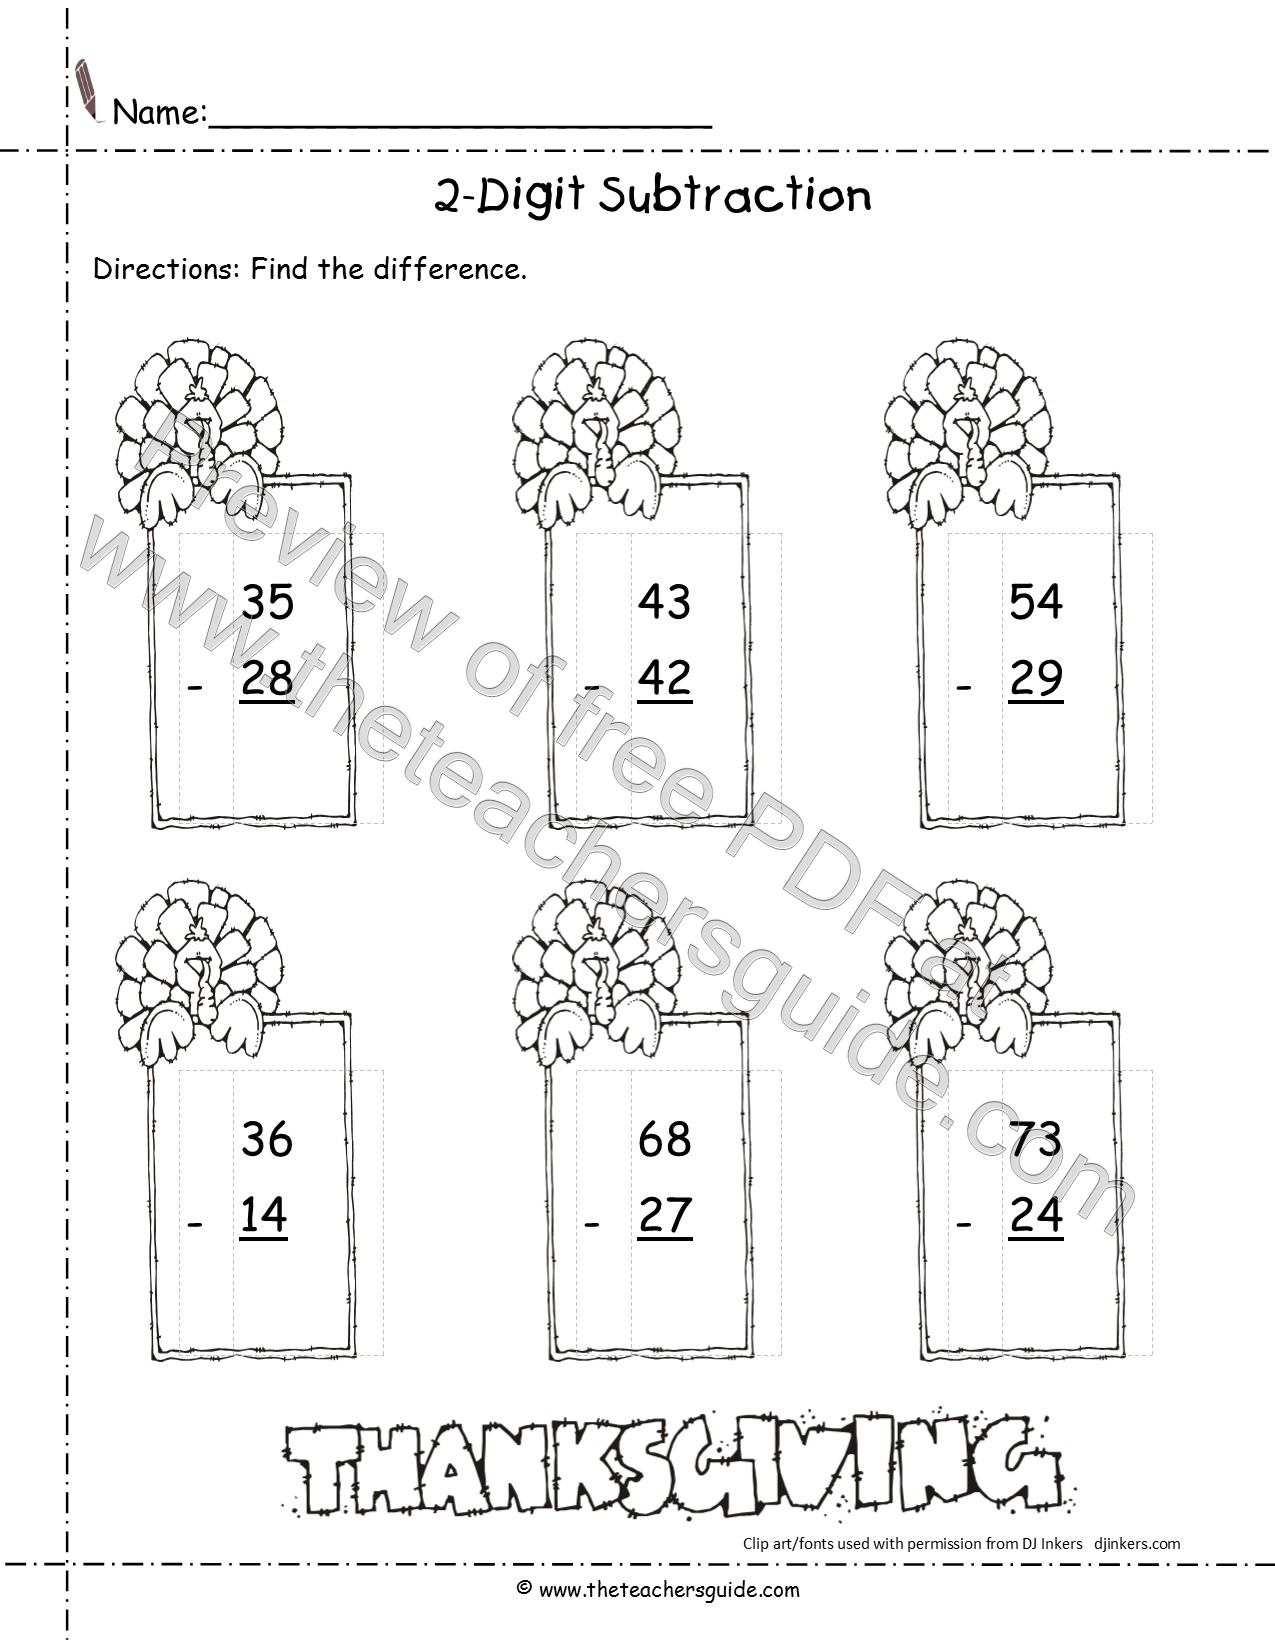 Thanksgiving Printouts from The Teacher\'s Guide